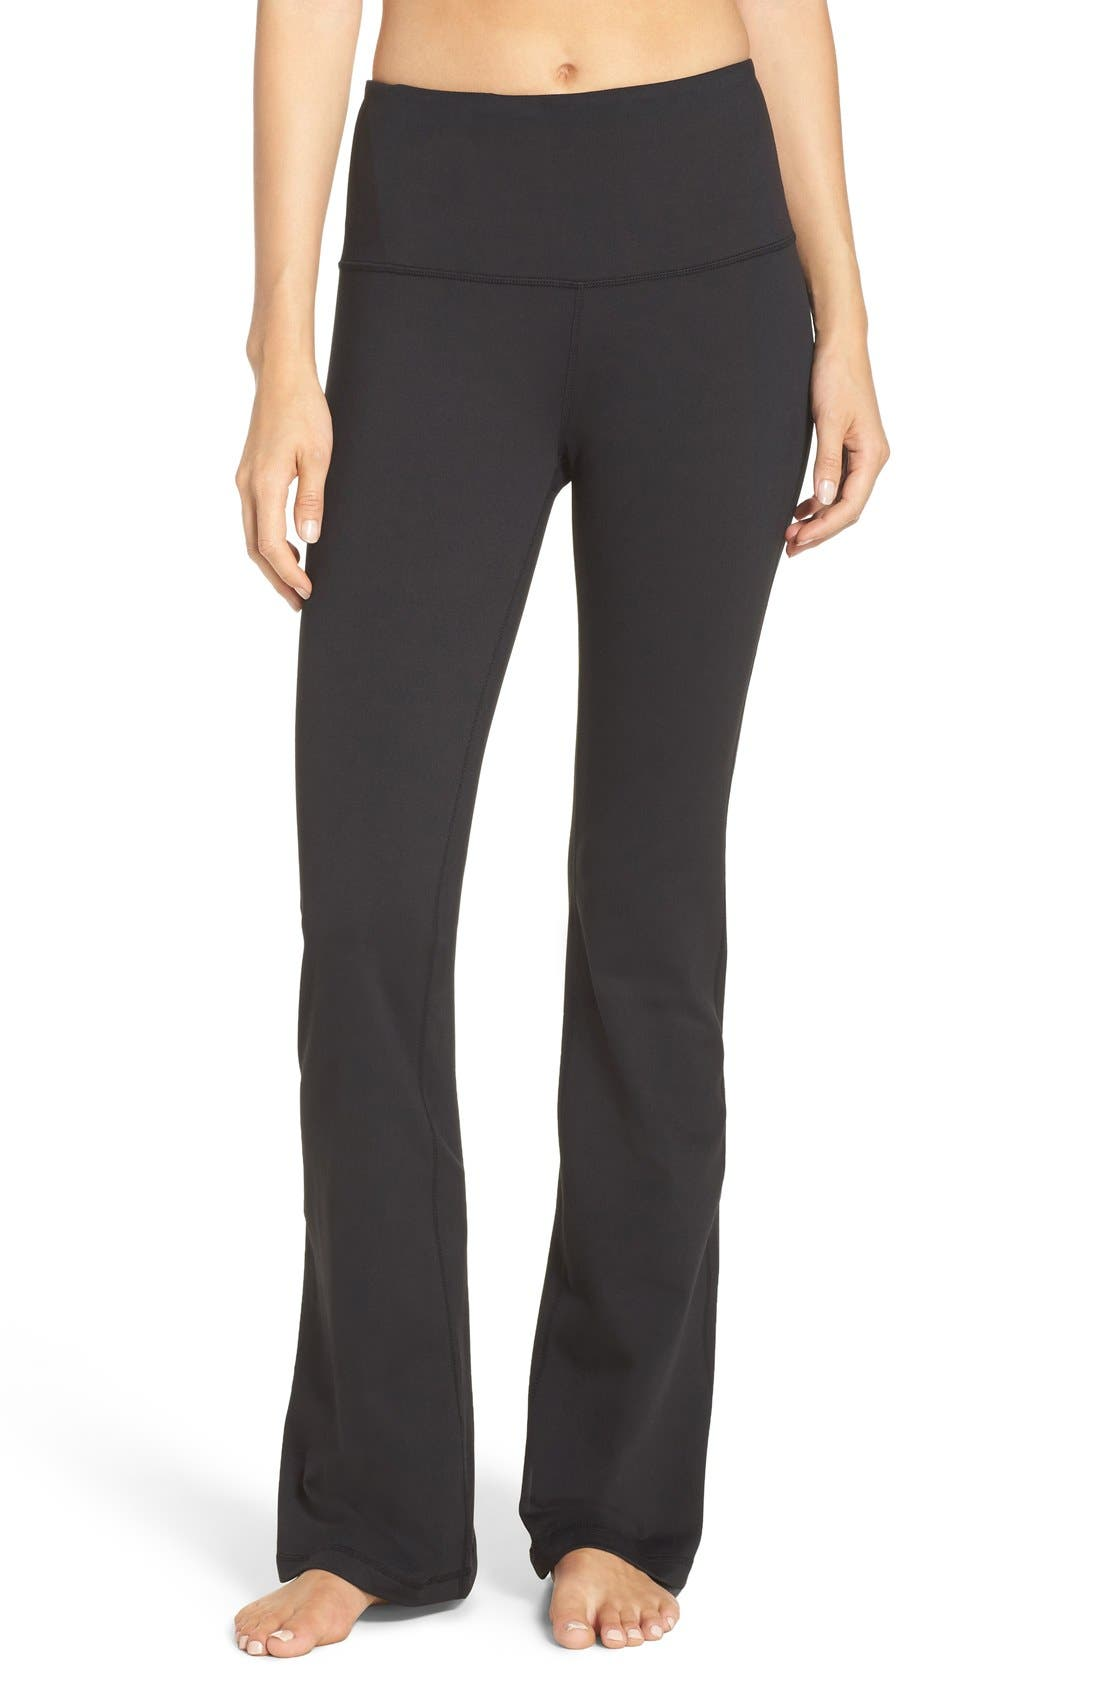 ZELLA, Barely Flare Live in High Waist Pants, Main thumbnail 1, color, BLACK